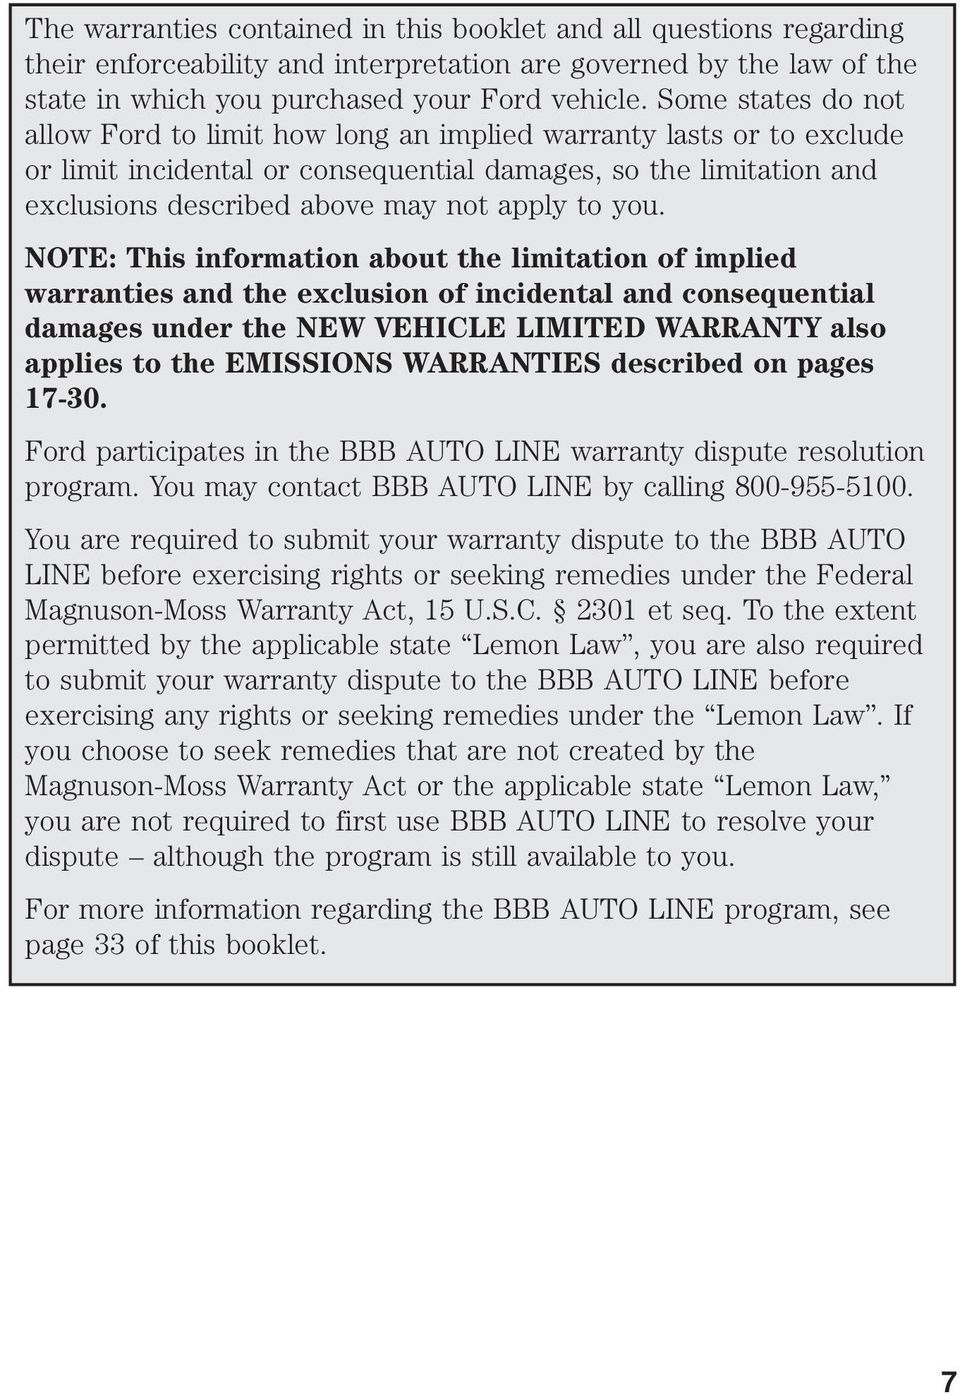 you. NOTE: This information about the limitation of implied warranties and the exclusion of incidental and consequential damages under the NEW VEHICLE LIMITED WARRANTY also applies to the EMISSIONS